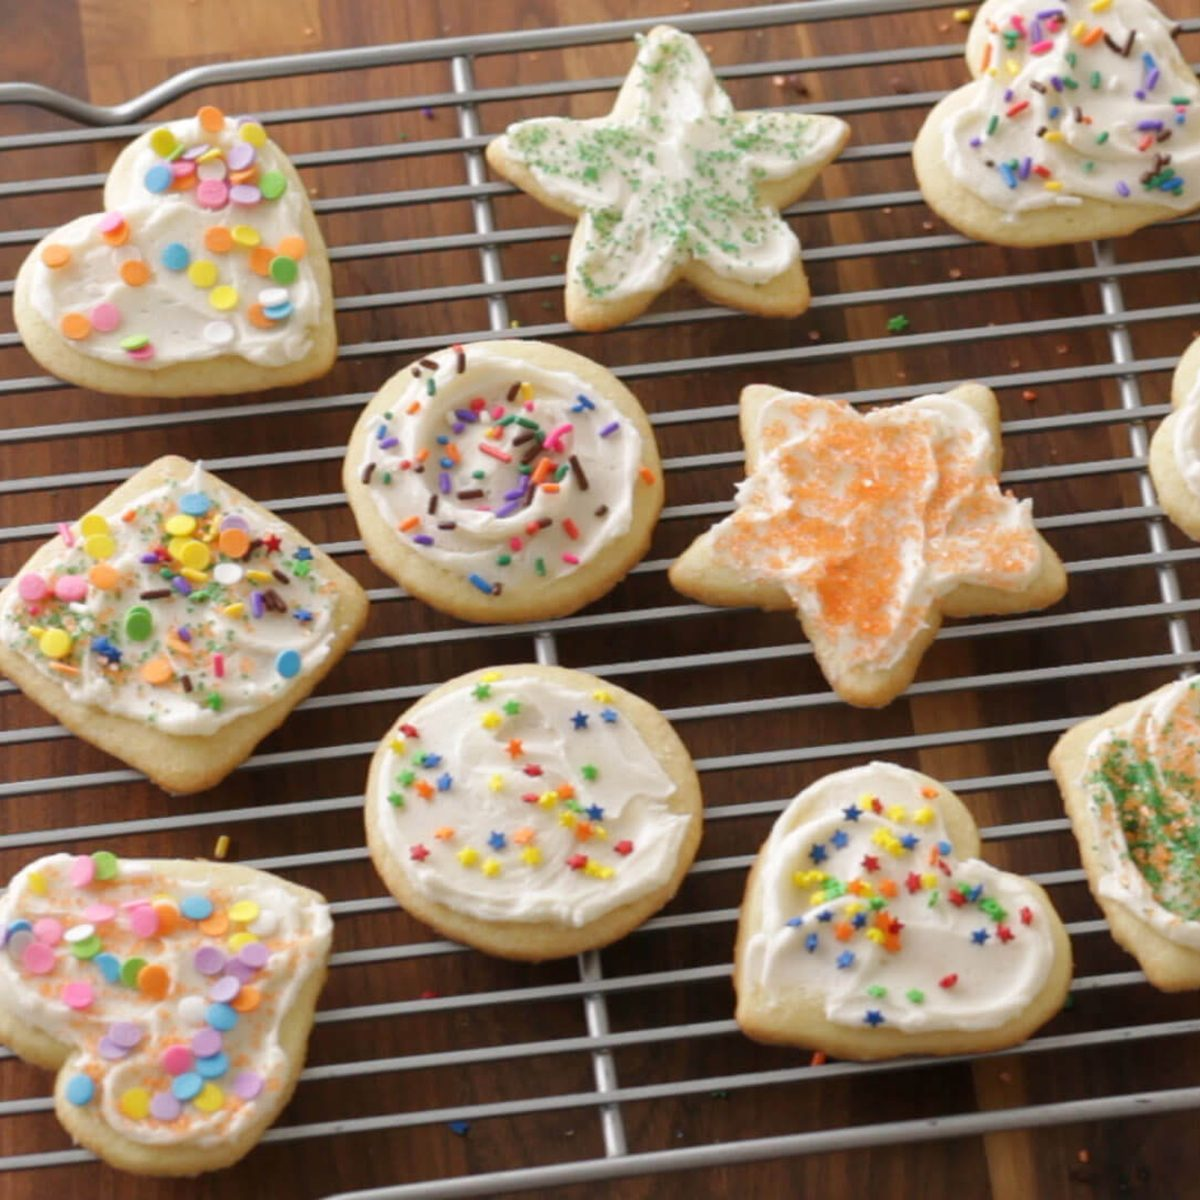 Wire rack filled with frosted sugar cookies